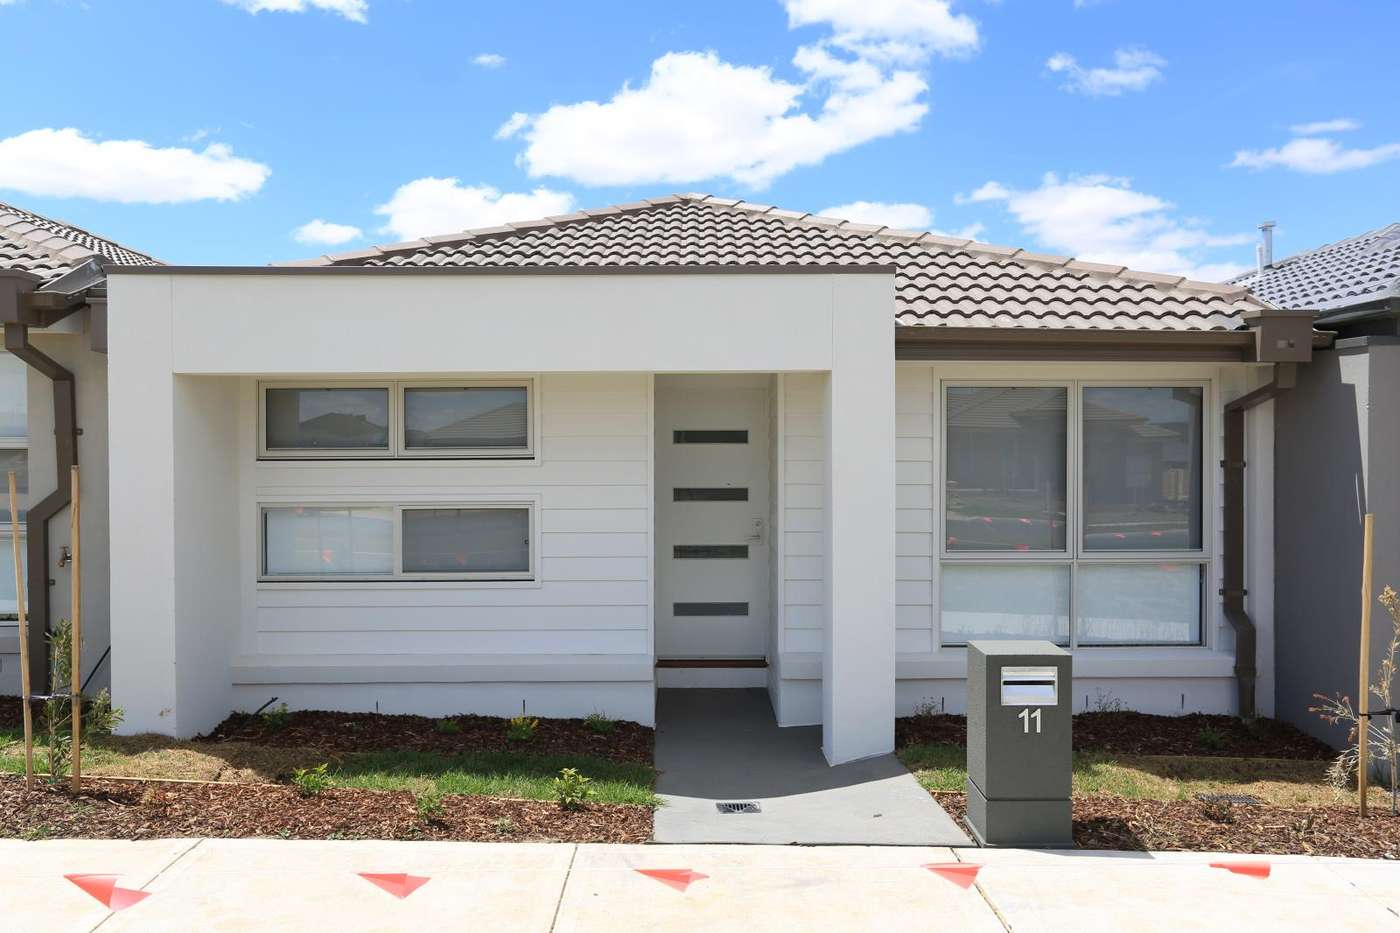 Main view of Homely house listing, 11 Herne Path, Wyndham Vale, VIC 3024